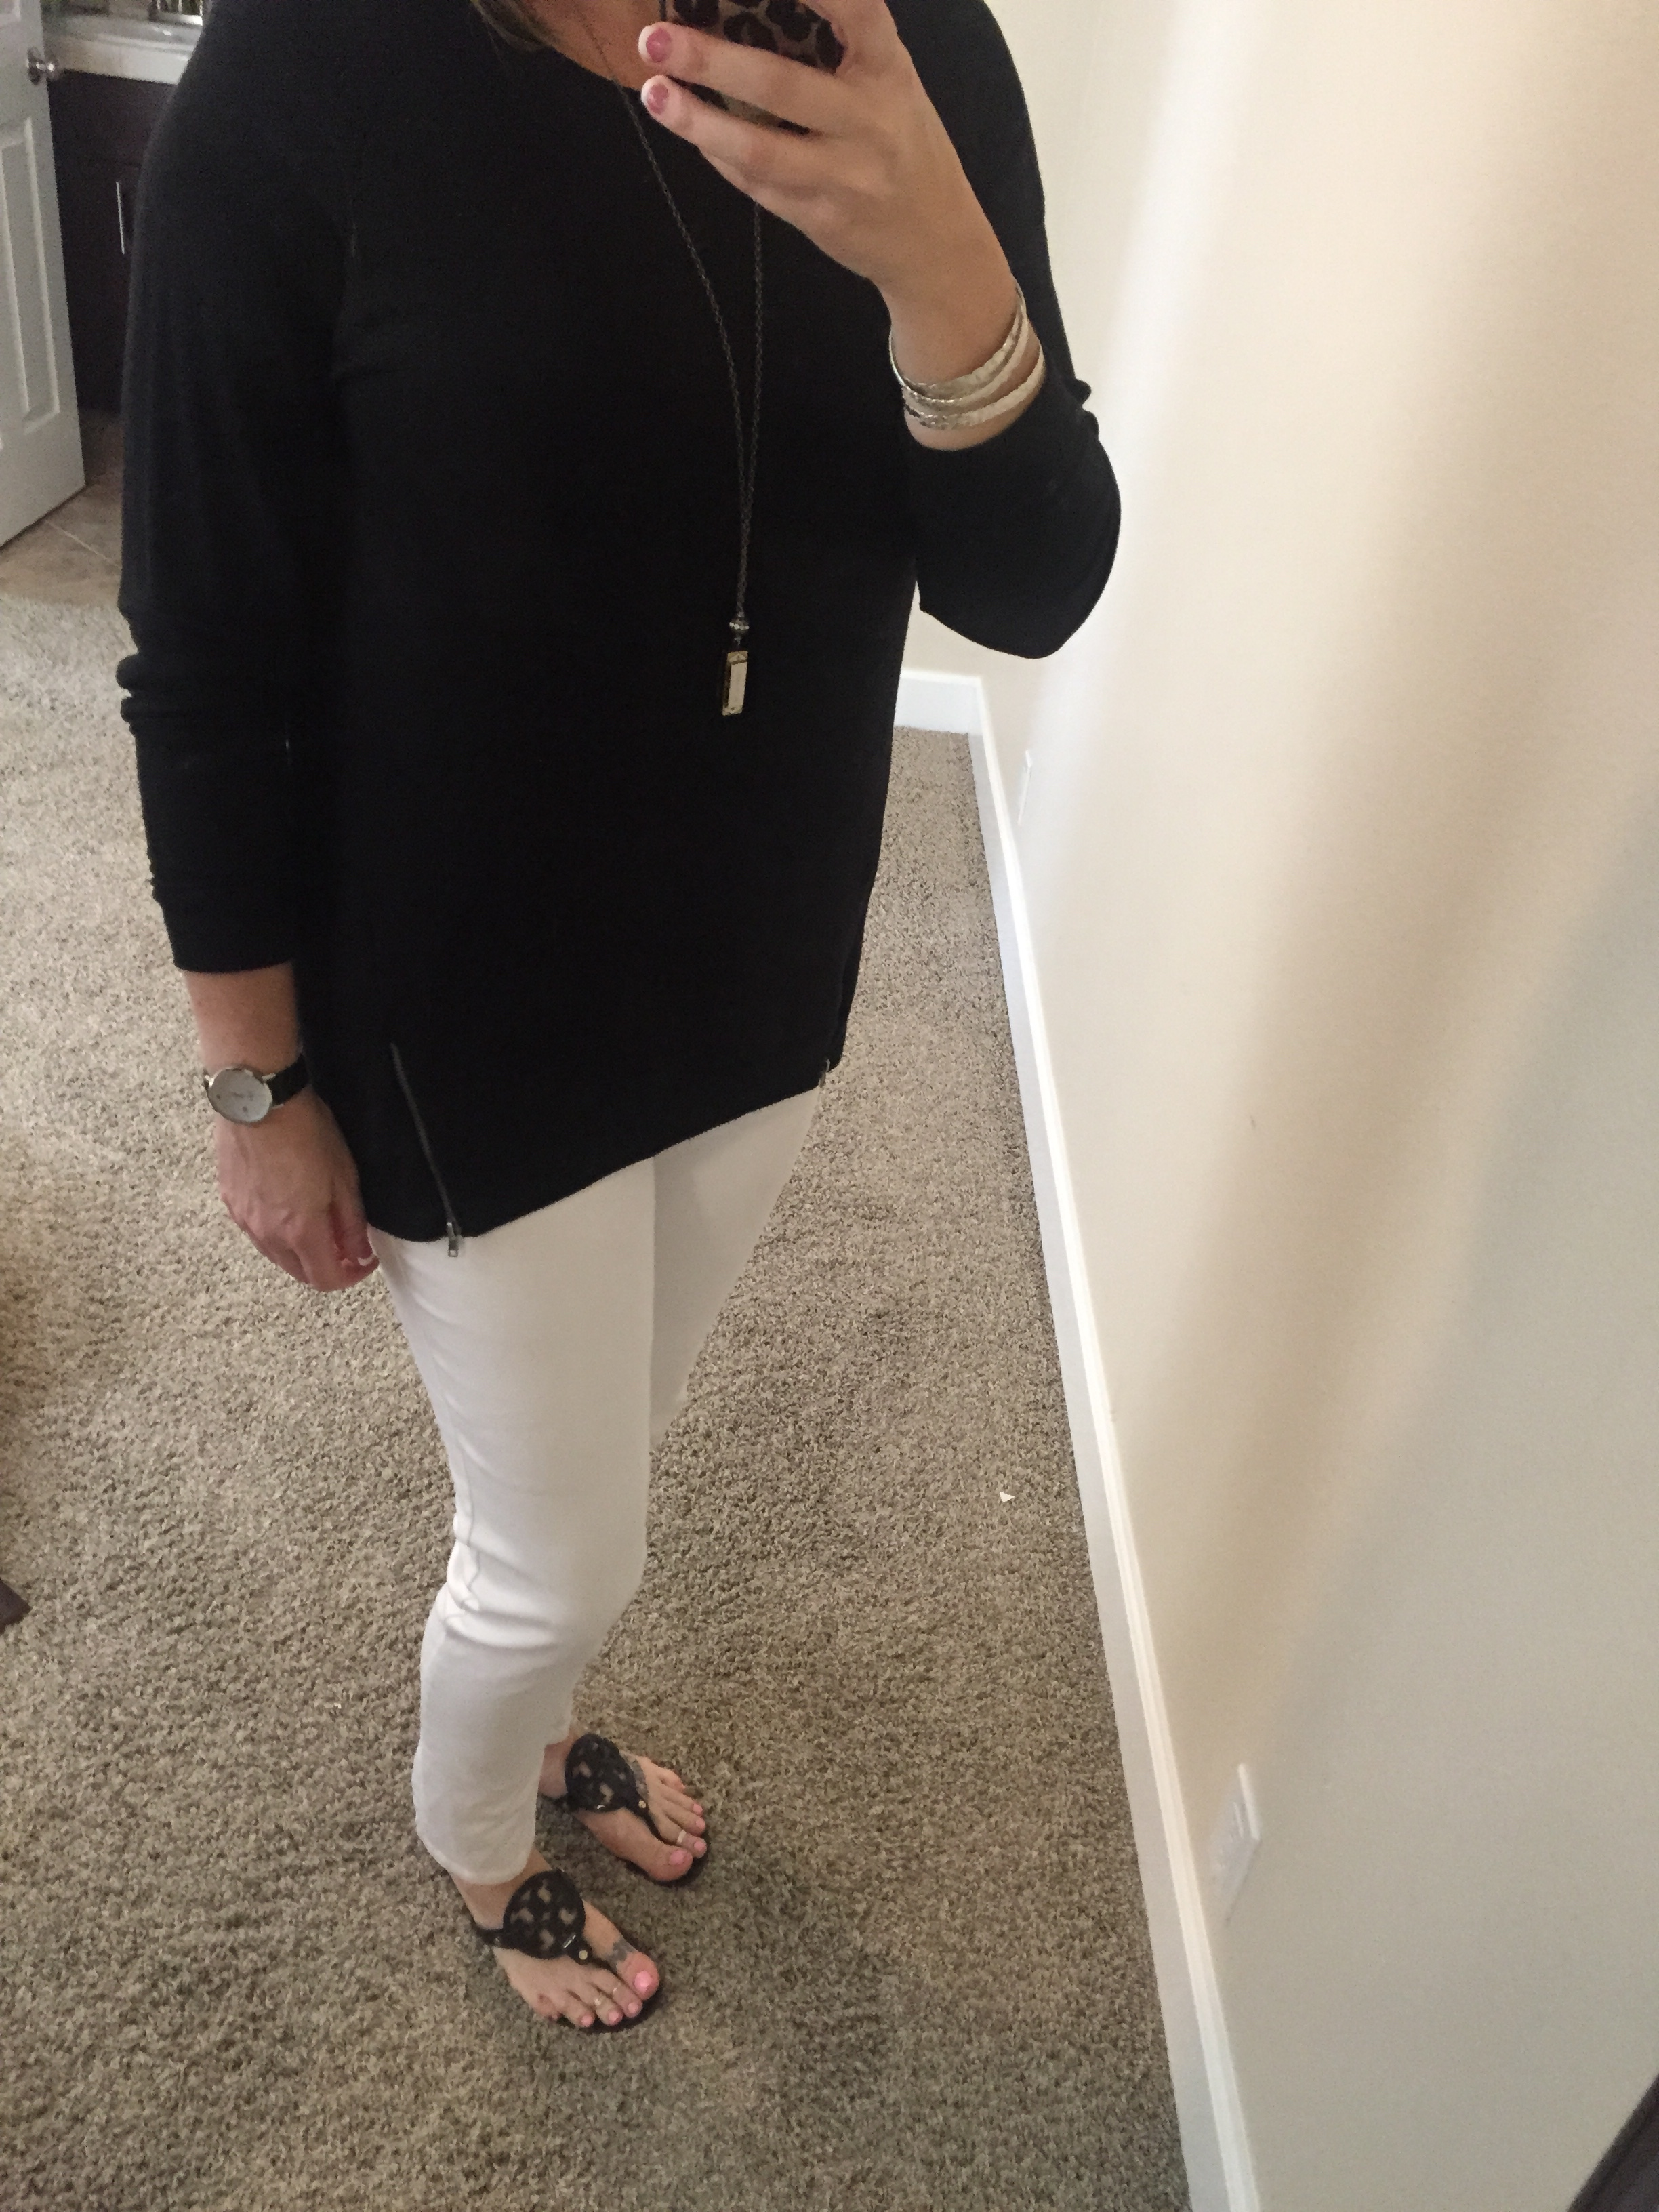 What I'm Wearing–Classic Black and White